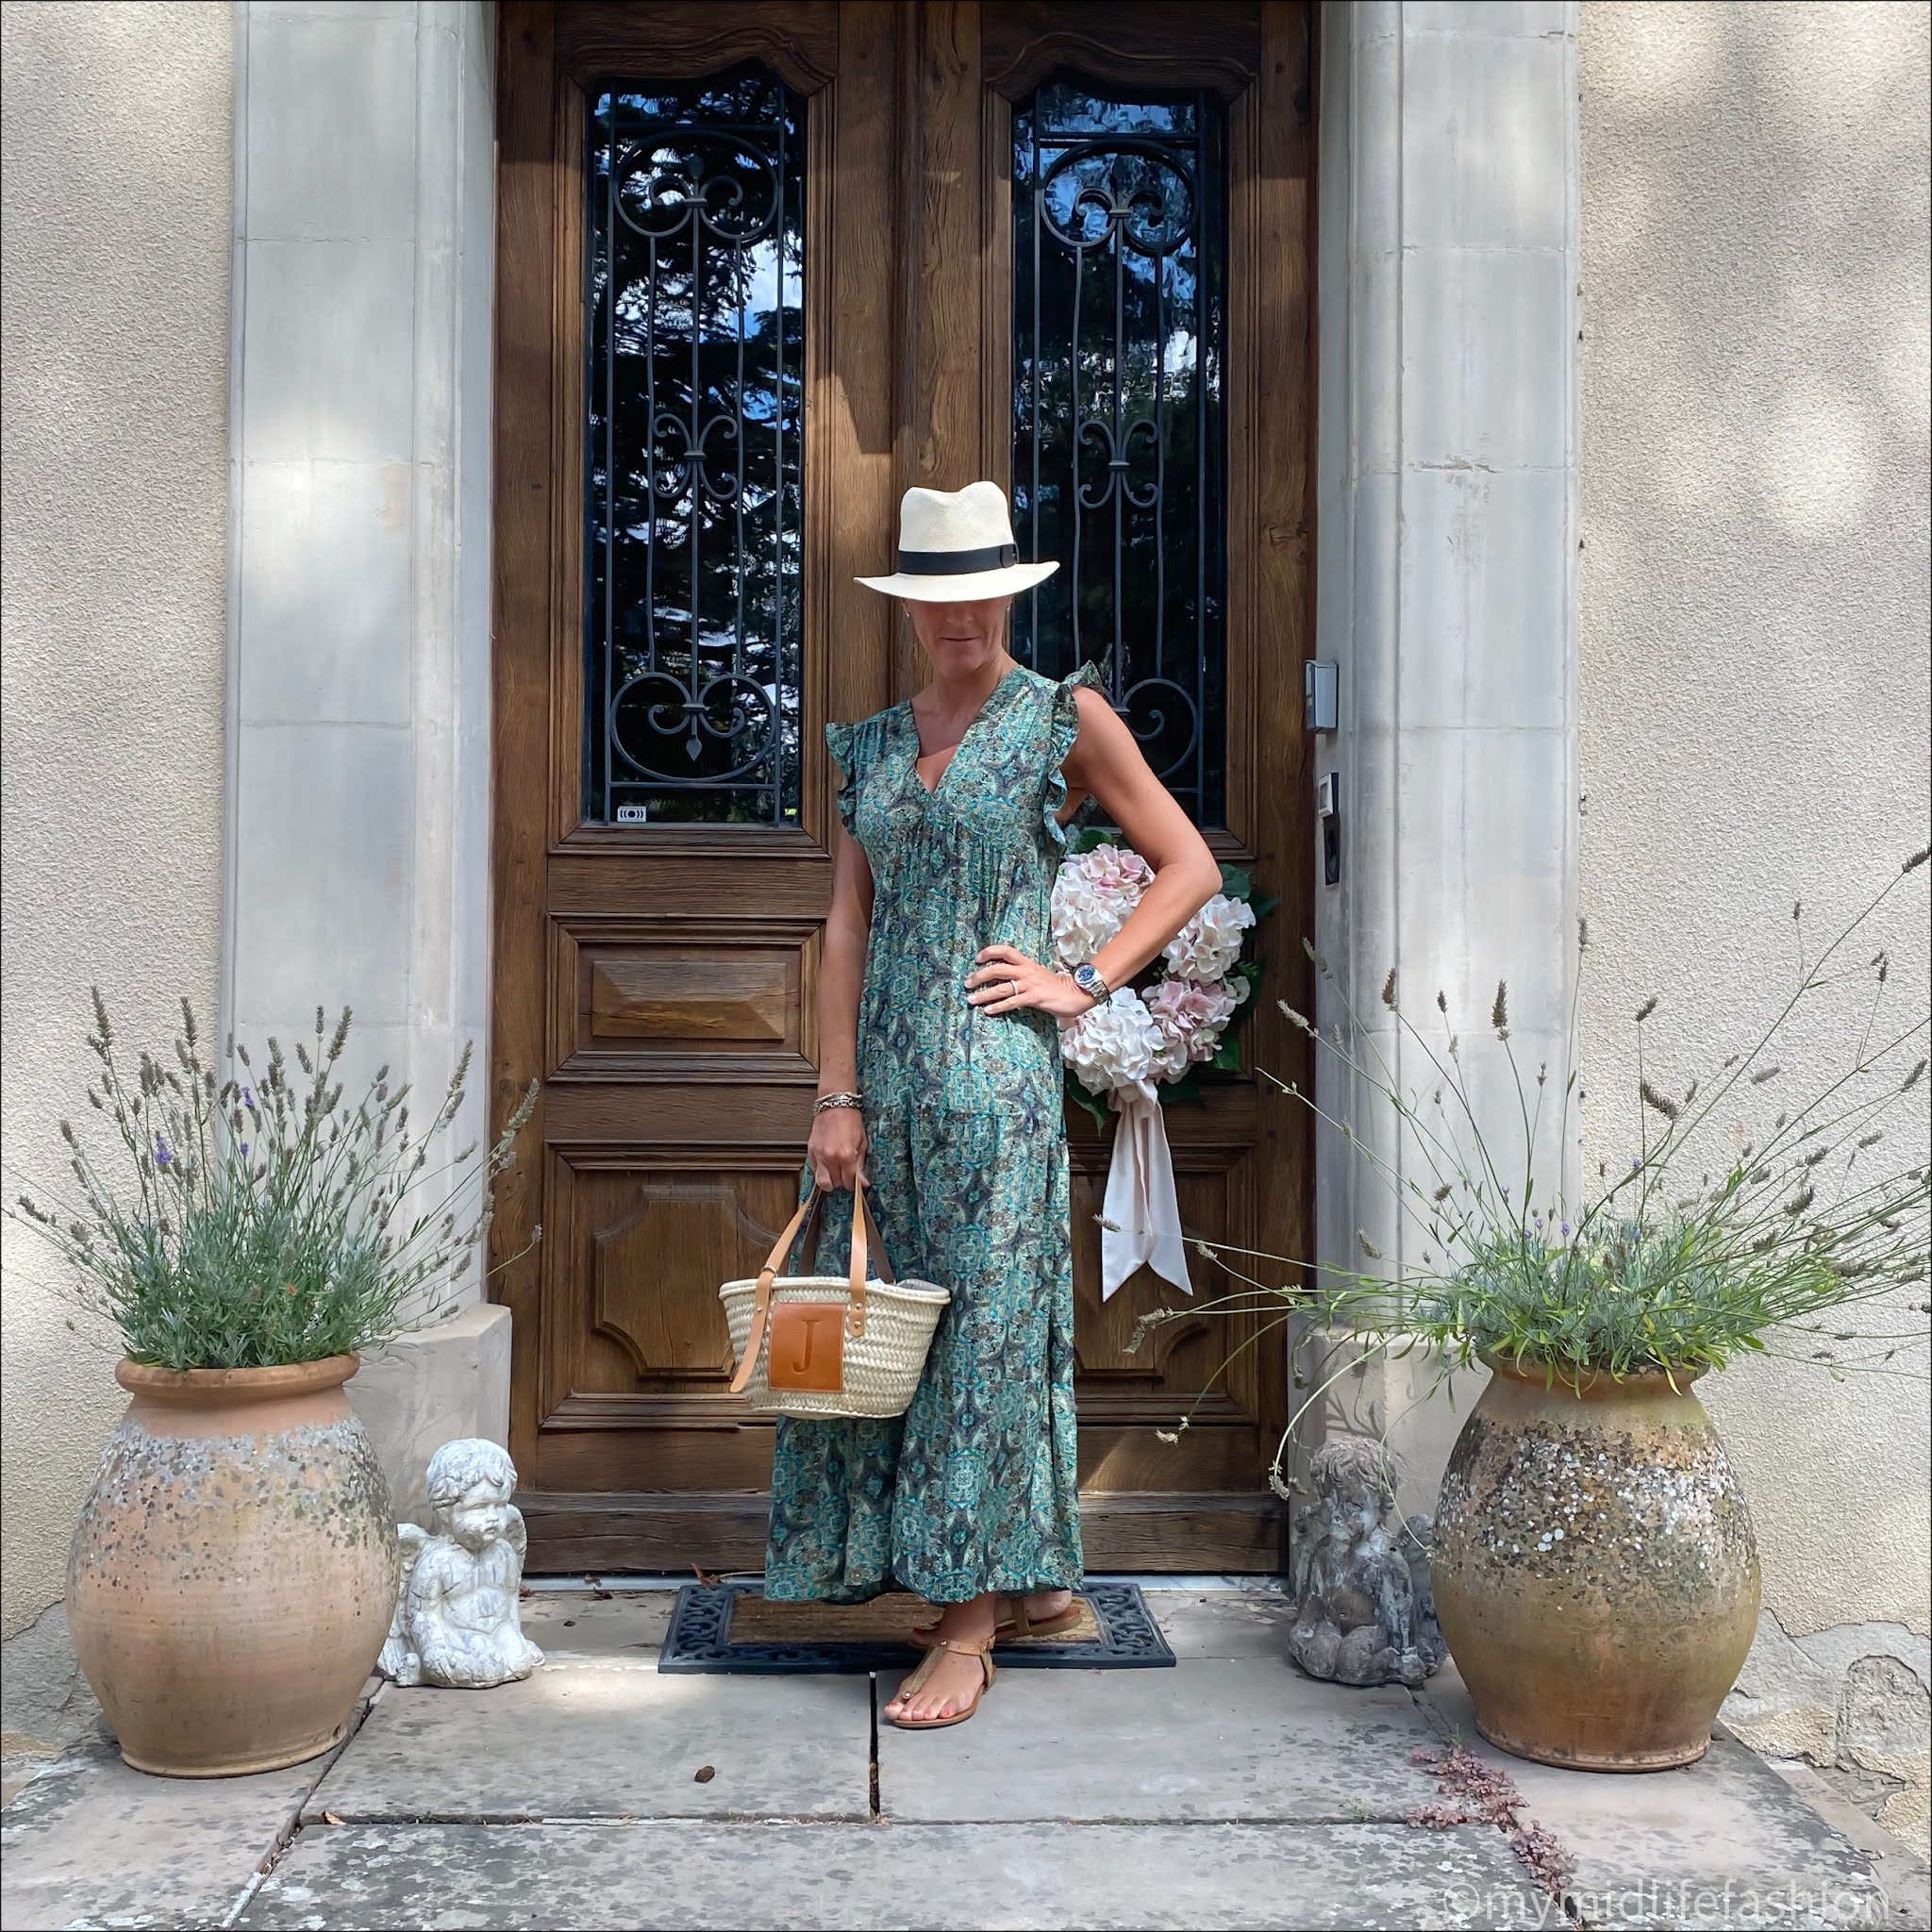 my midlife fashion, h and m Panama hat, lada jewelry monogrammed basket, carvela leather thong sandals, patterned maxi dress